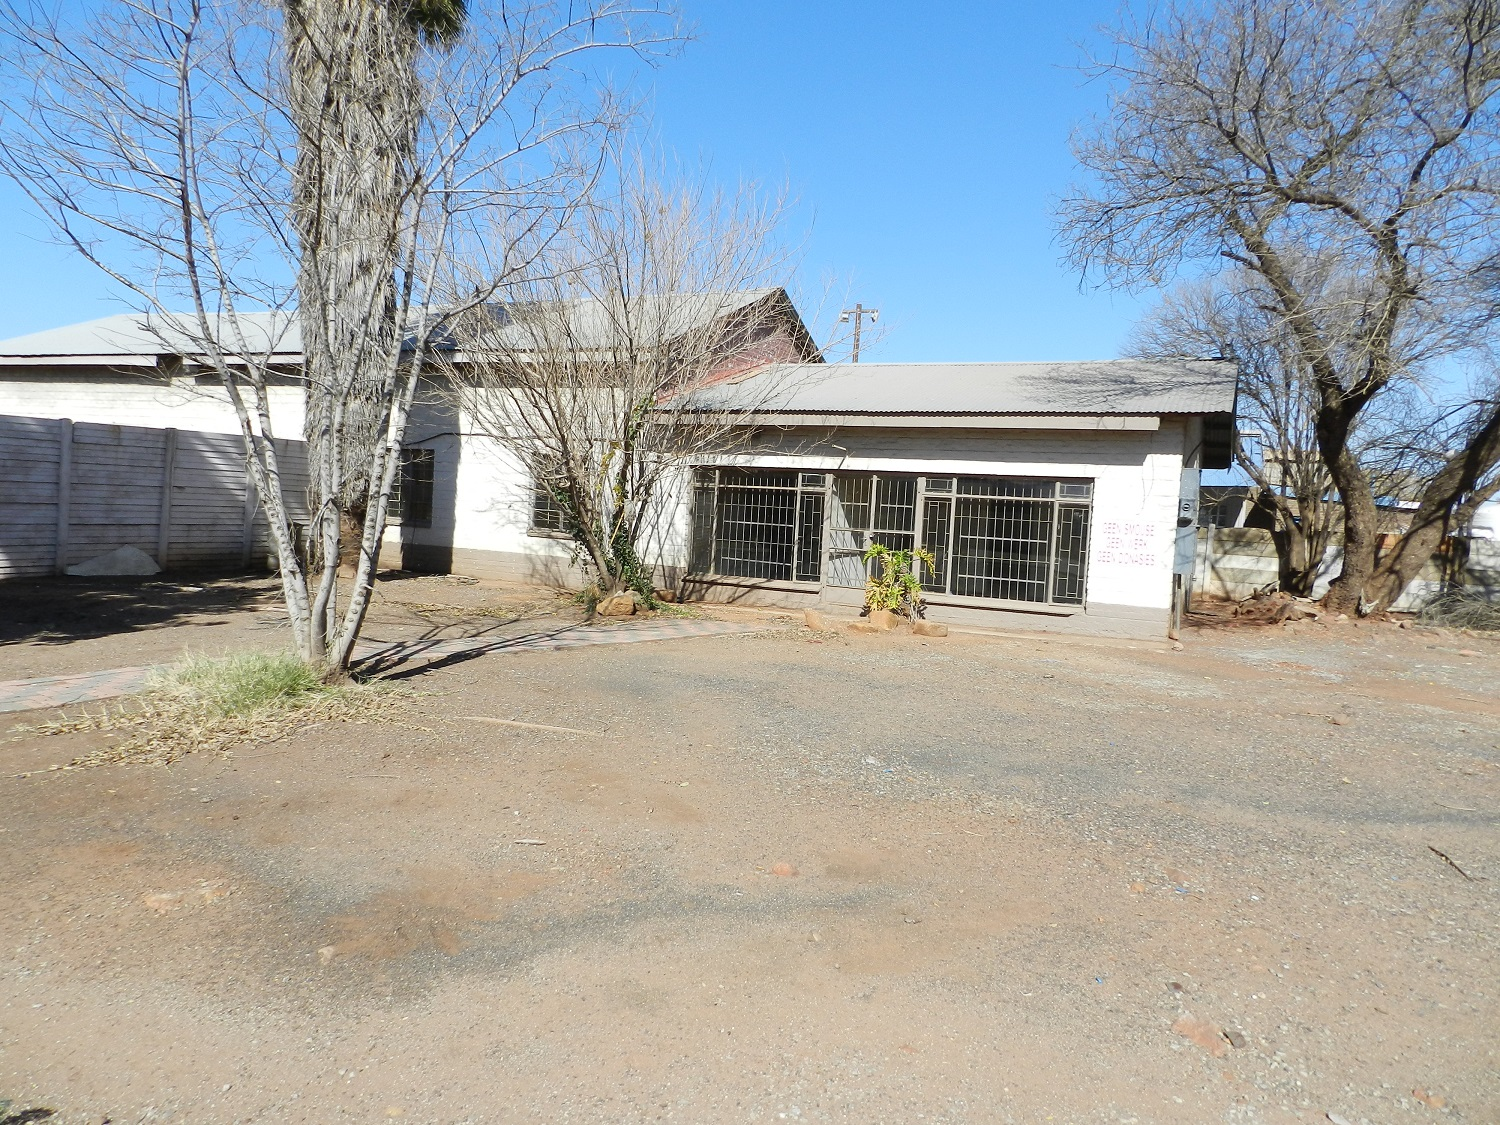 9 BedroomCommercial For Sale In Potch Industria